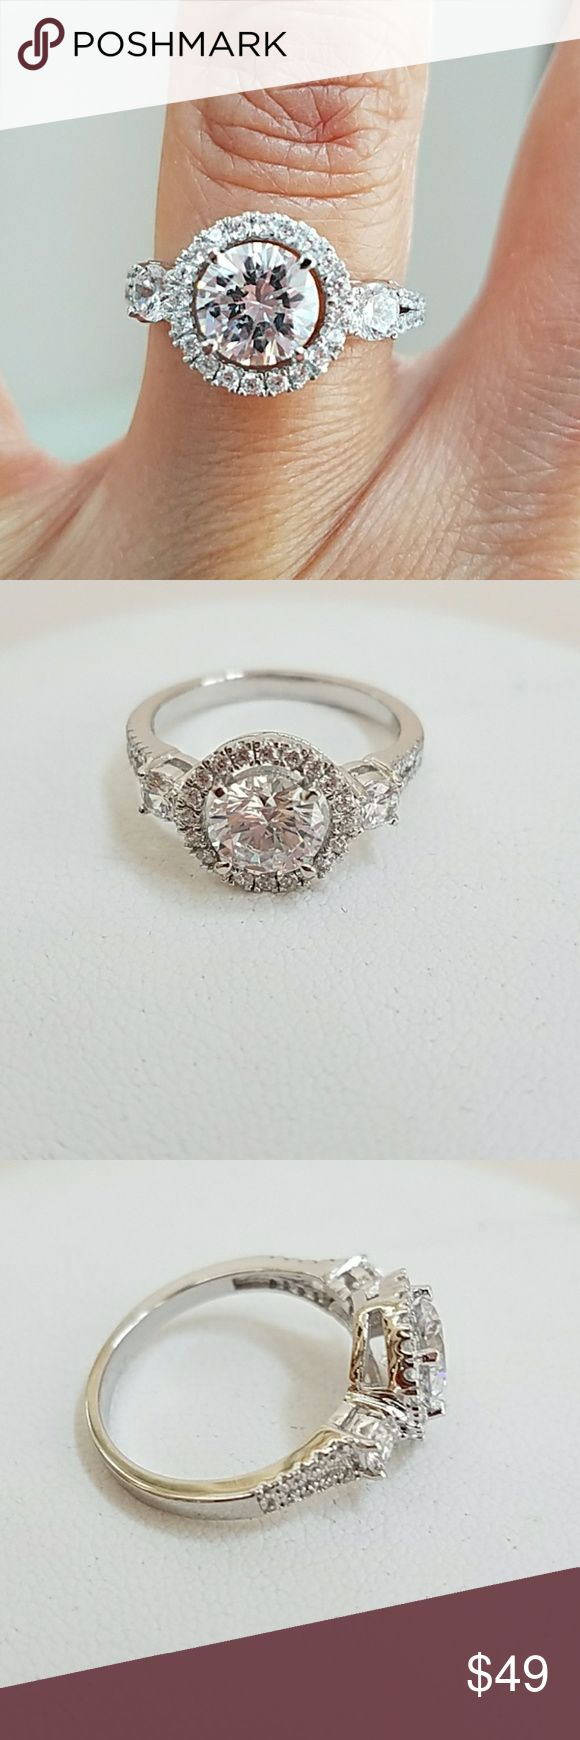 14k gold plated Engagement Ring 14k gold plated Engagement Ring with one karat CZ Center stone  Available in sizes 5 6 7 8 9 Item#SSRG320-14 Jewelry Rings